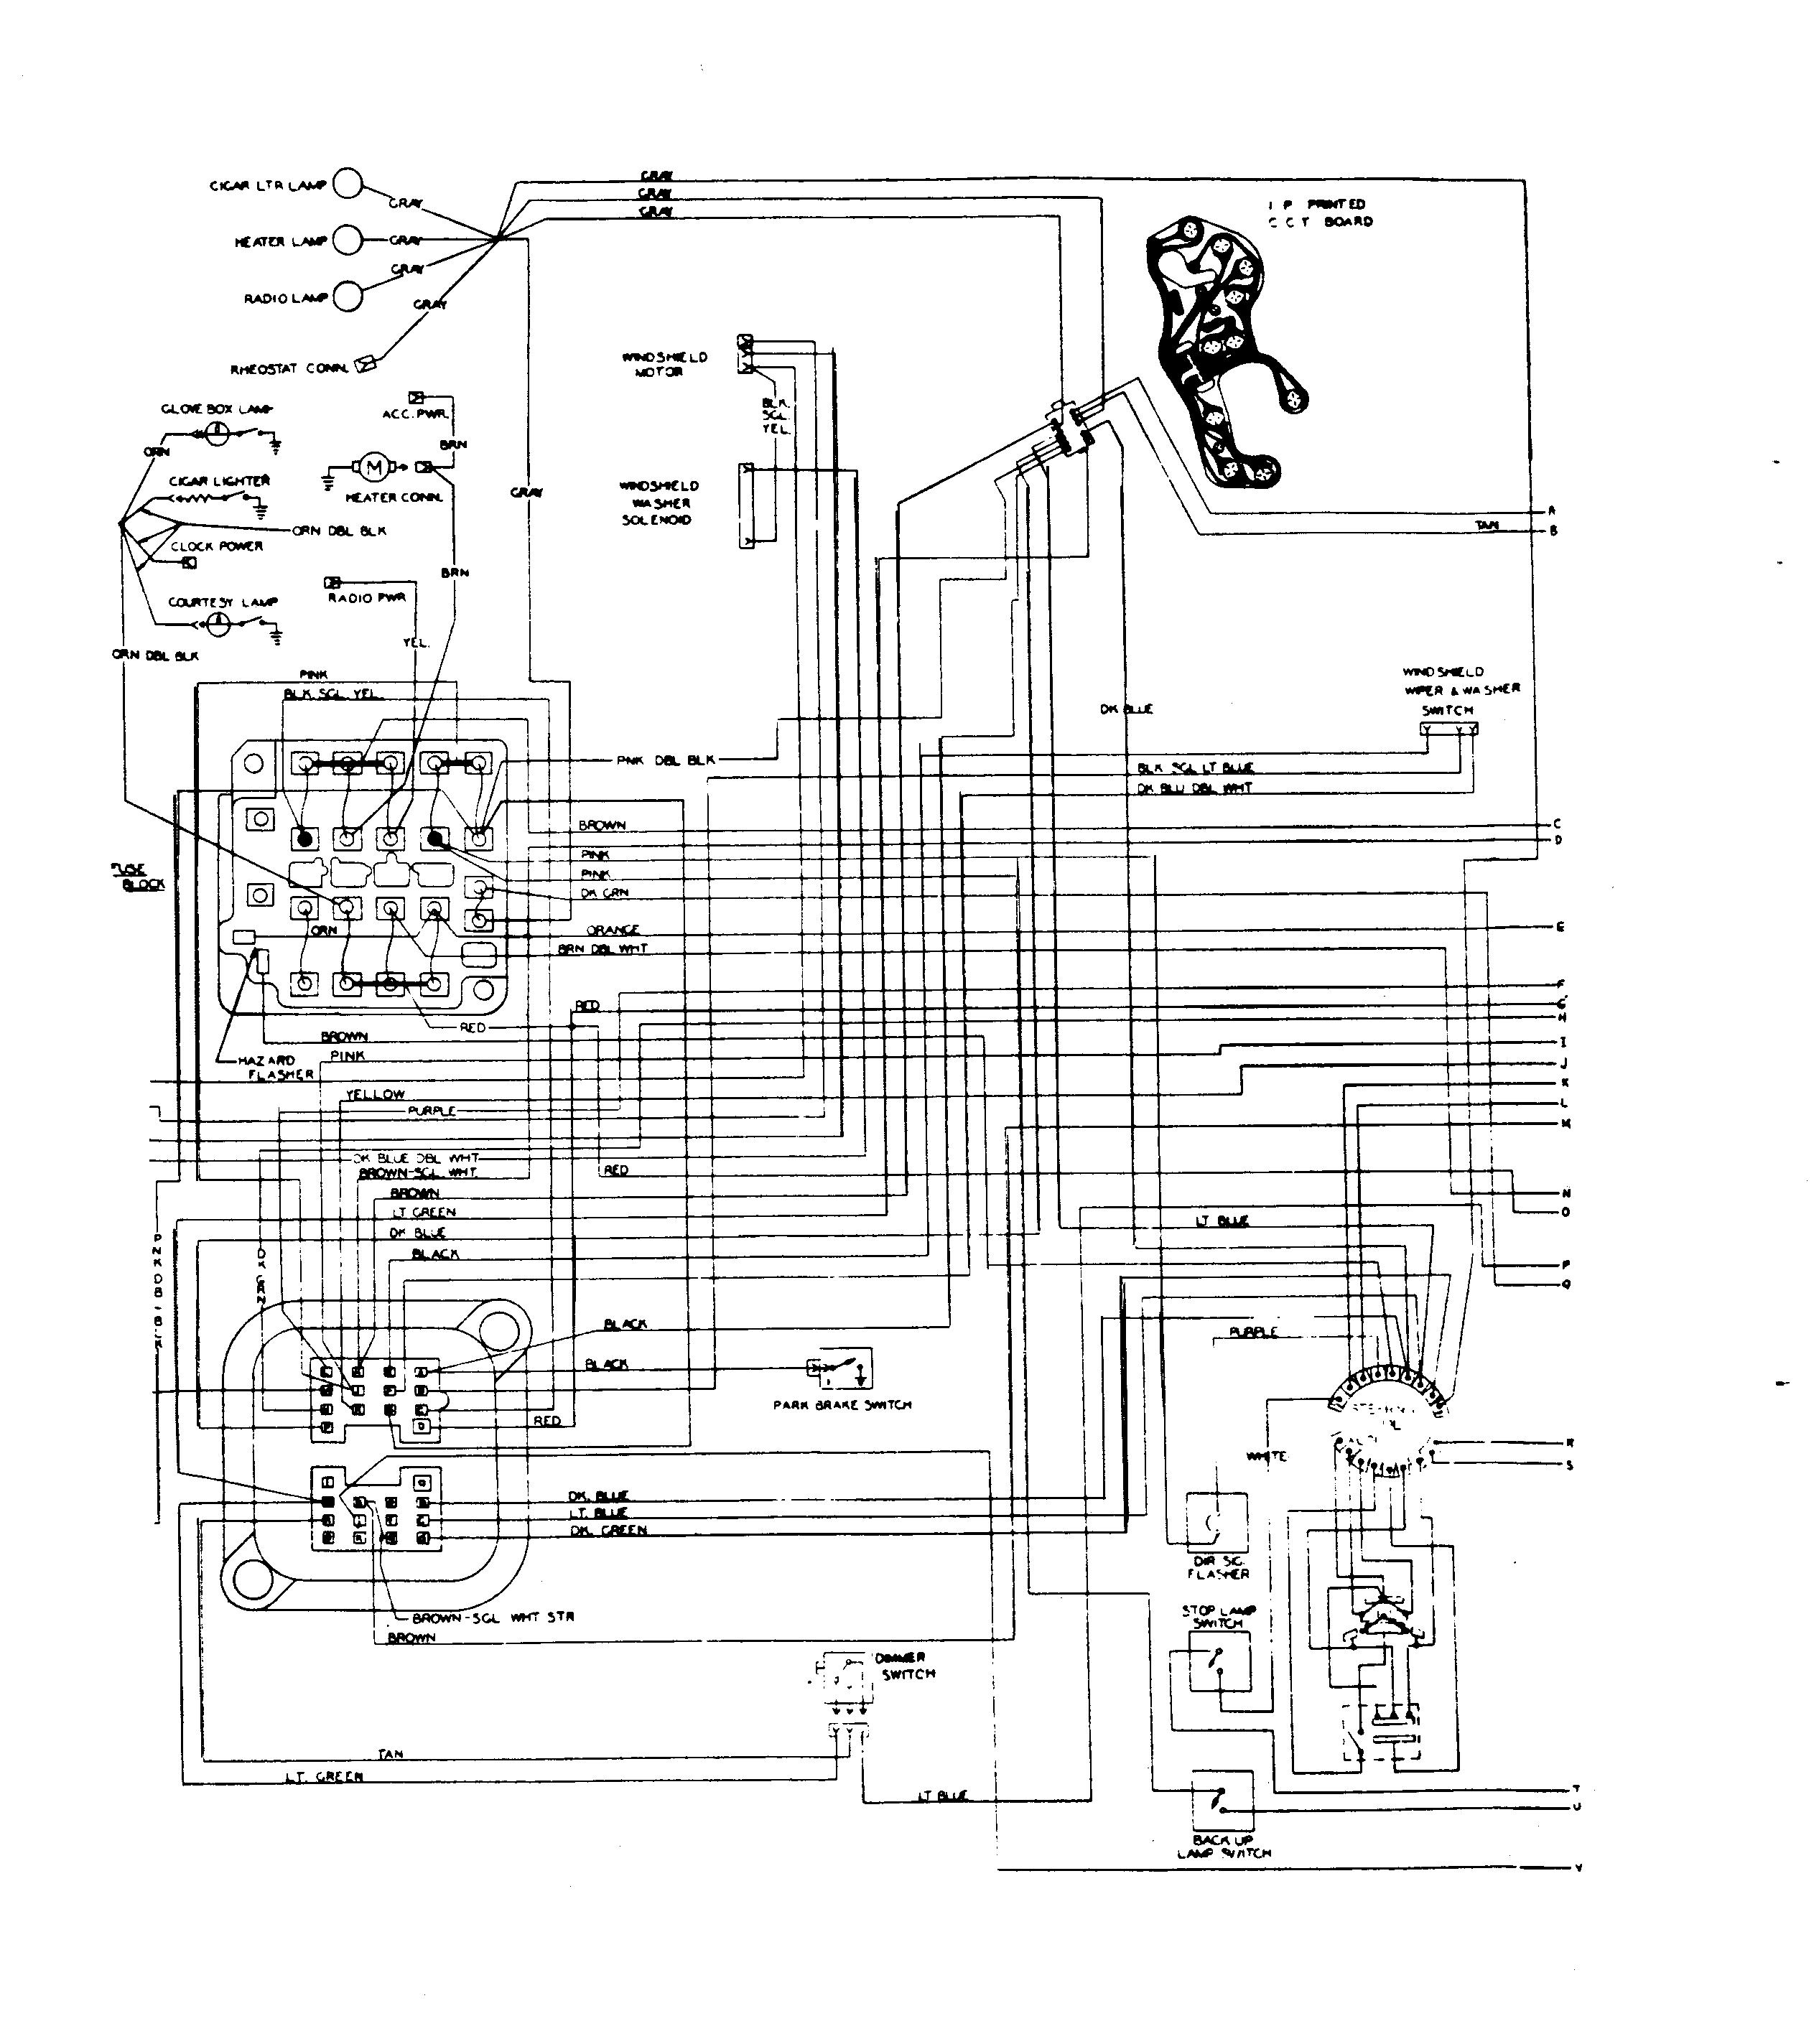 wiring diagram for pontiac gto wiring wiring diagrams online click image